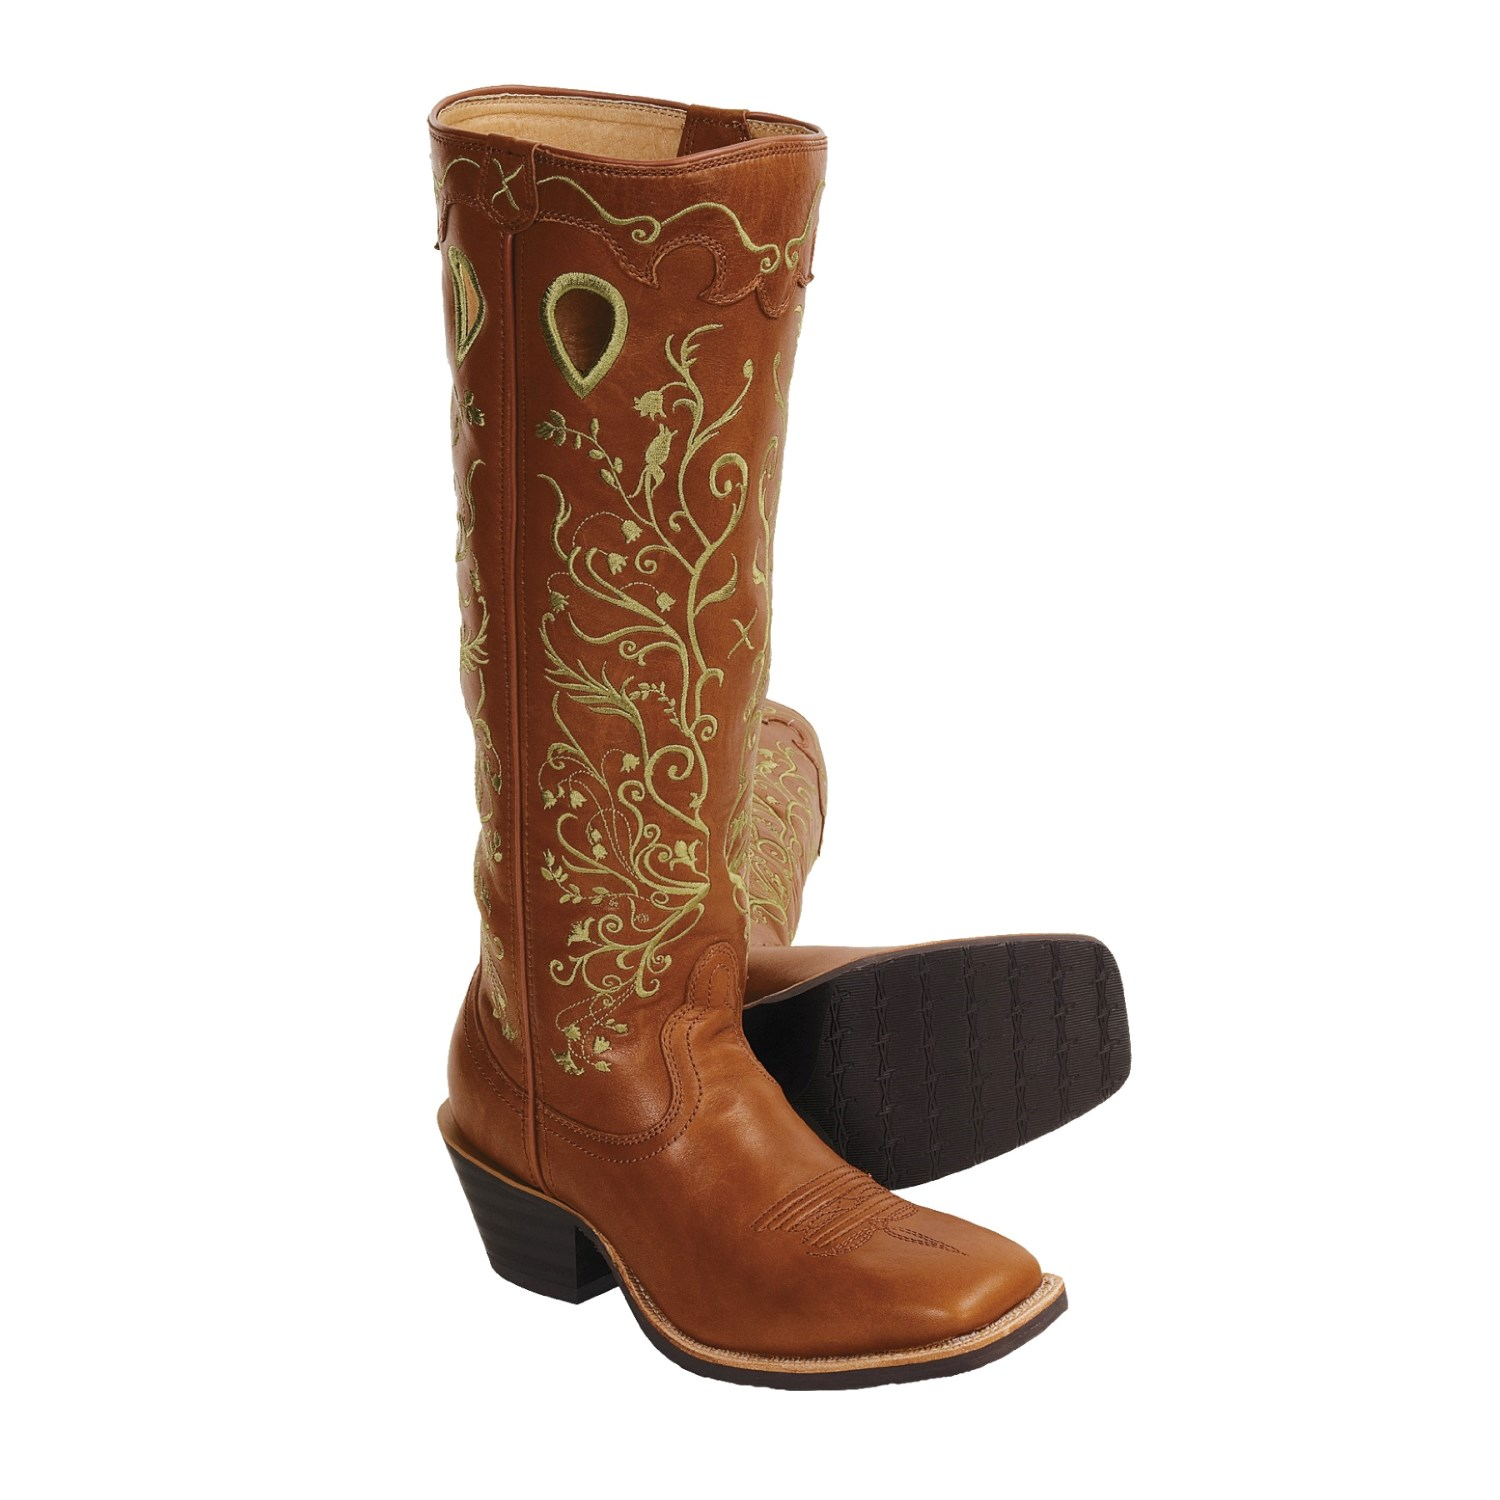 Twisted X Boots Buckaroo Cowboy Boots (For Women) 3207R - Save 33%